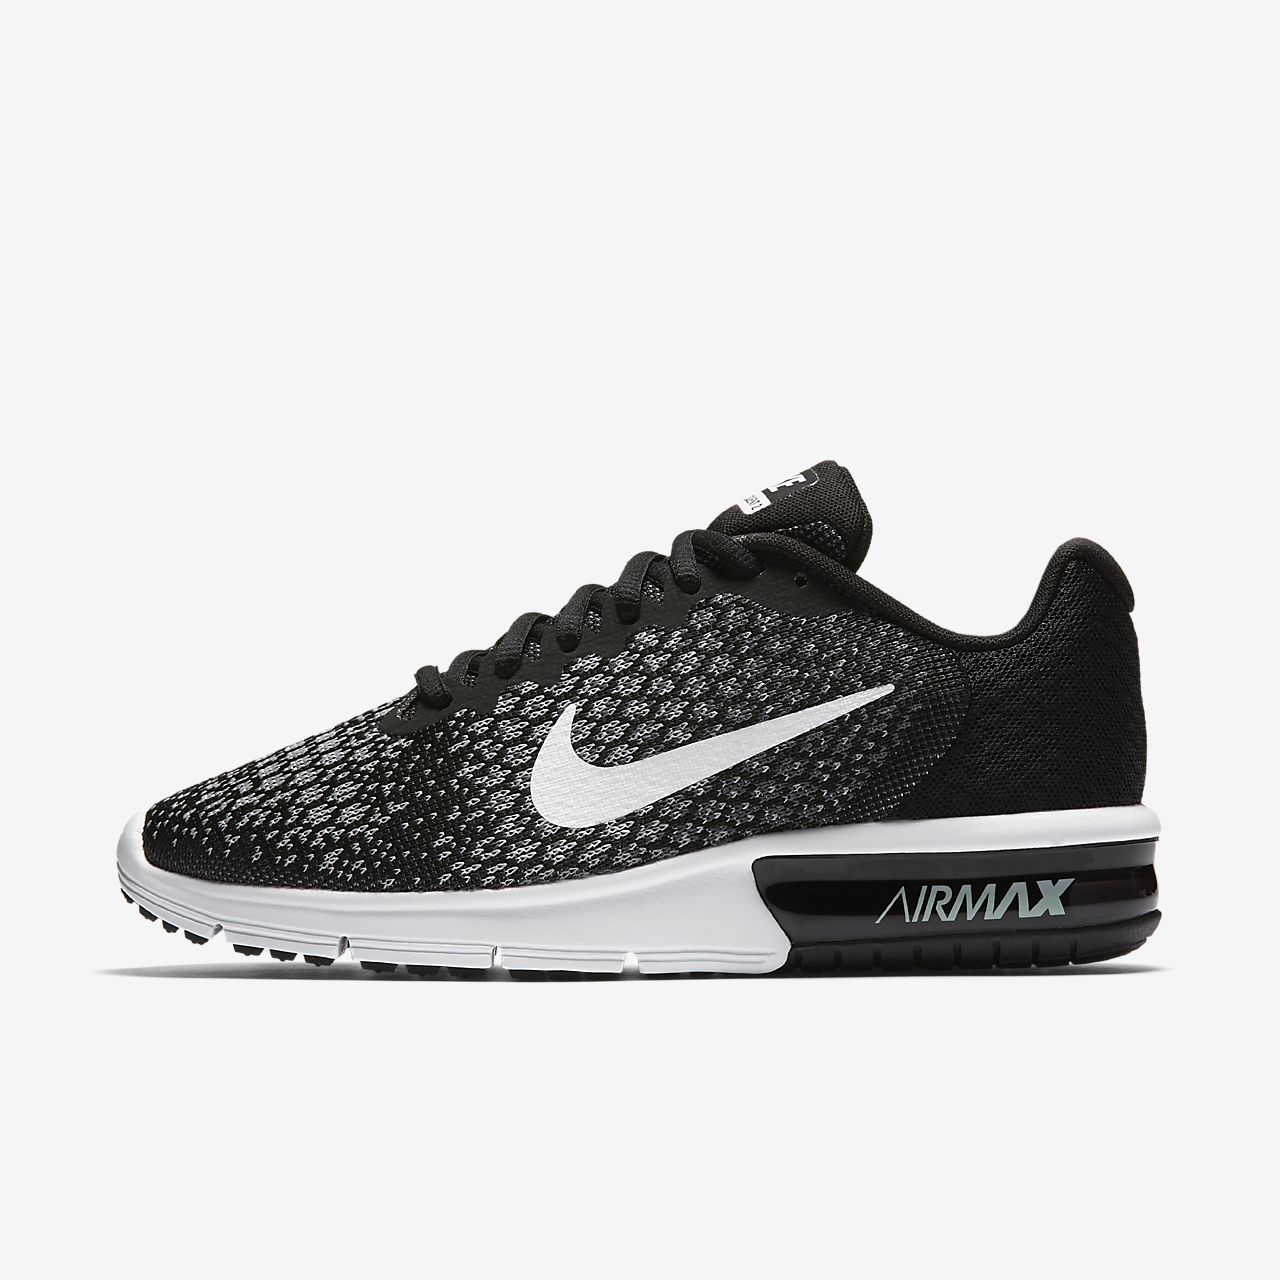 best loved 2b2f5 04df9 ... Chaussure Nike Air Max Sequent 2 pour Femme